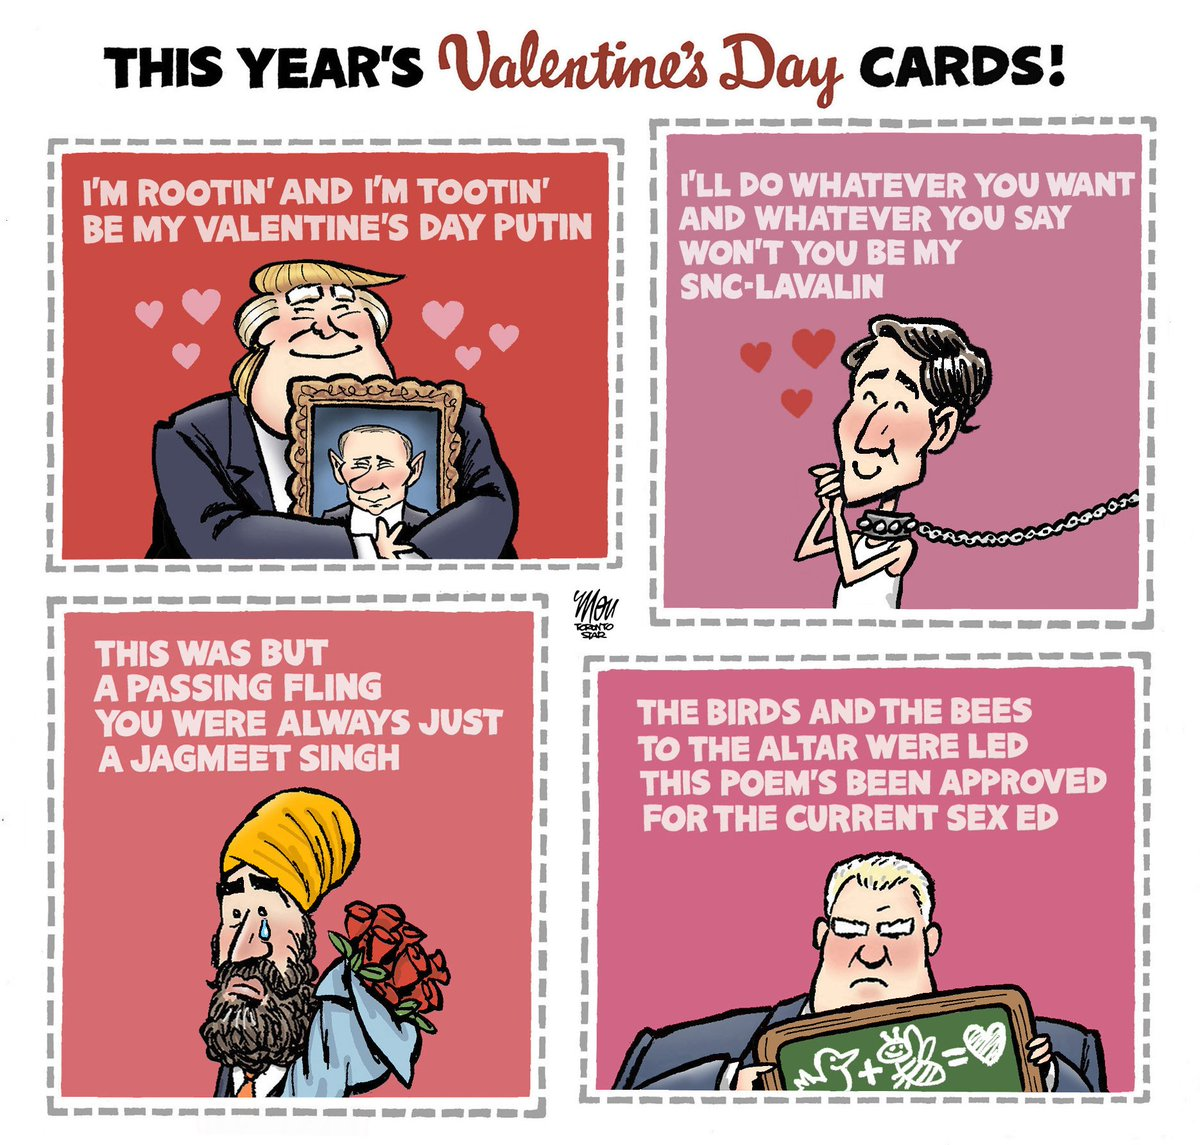 Here's today's #ValentinesDay cartoon in @TorontoStar